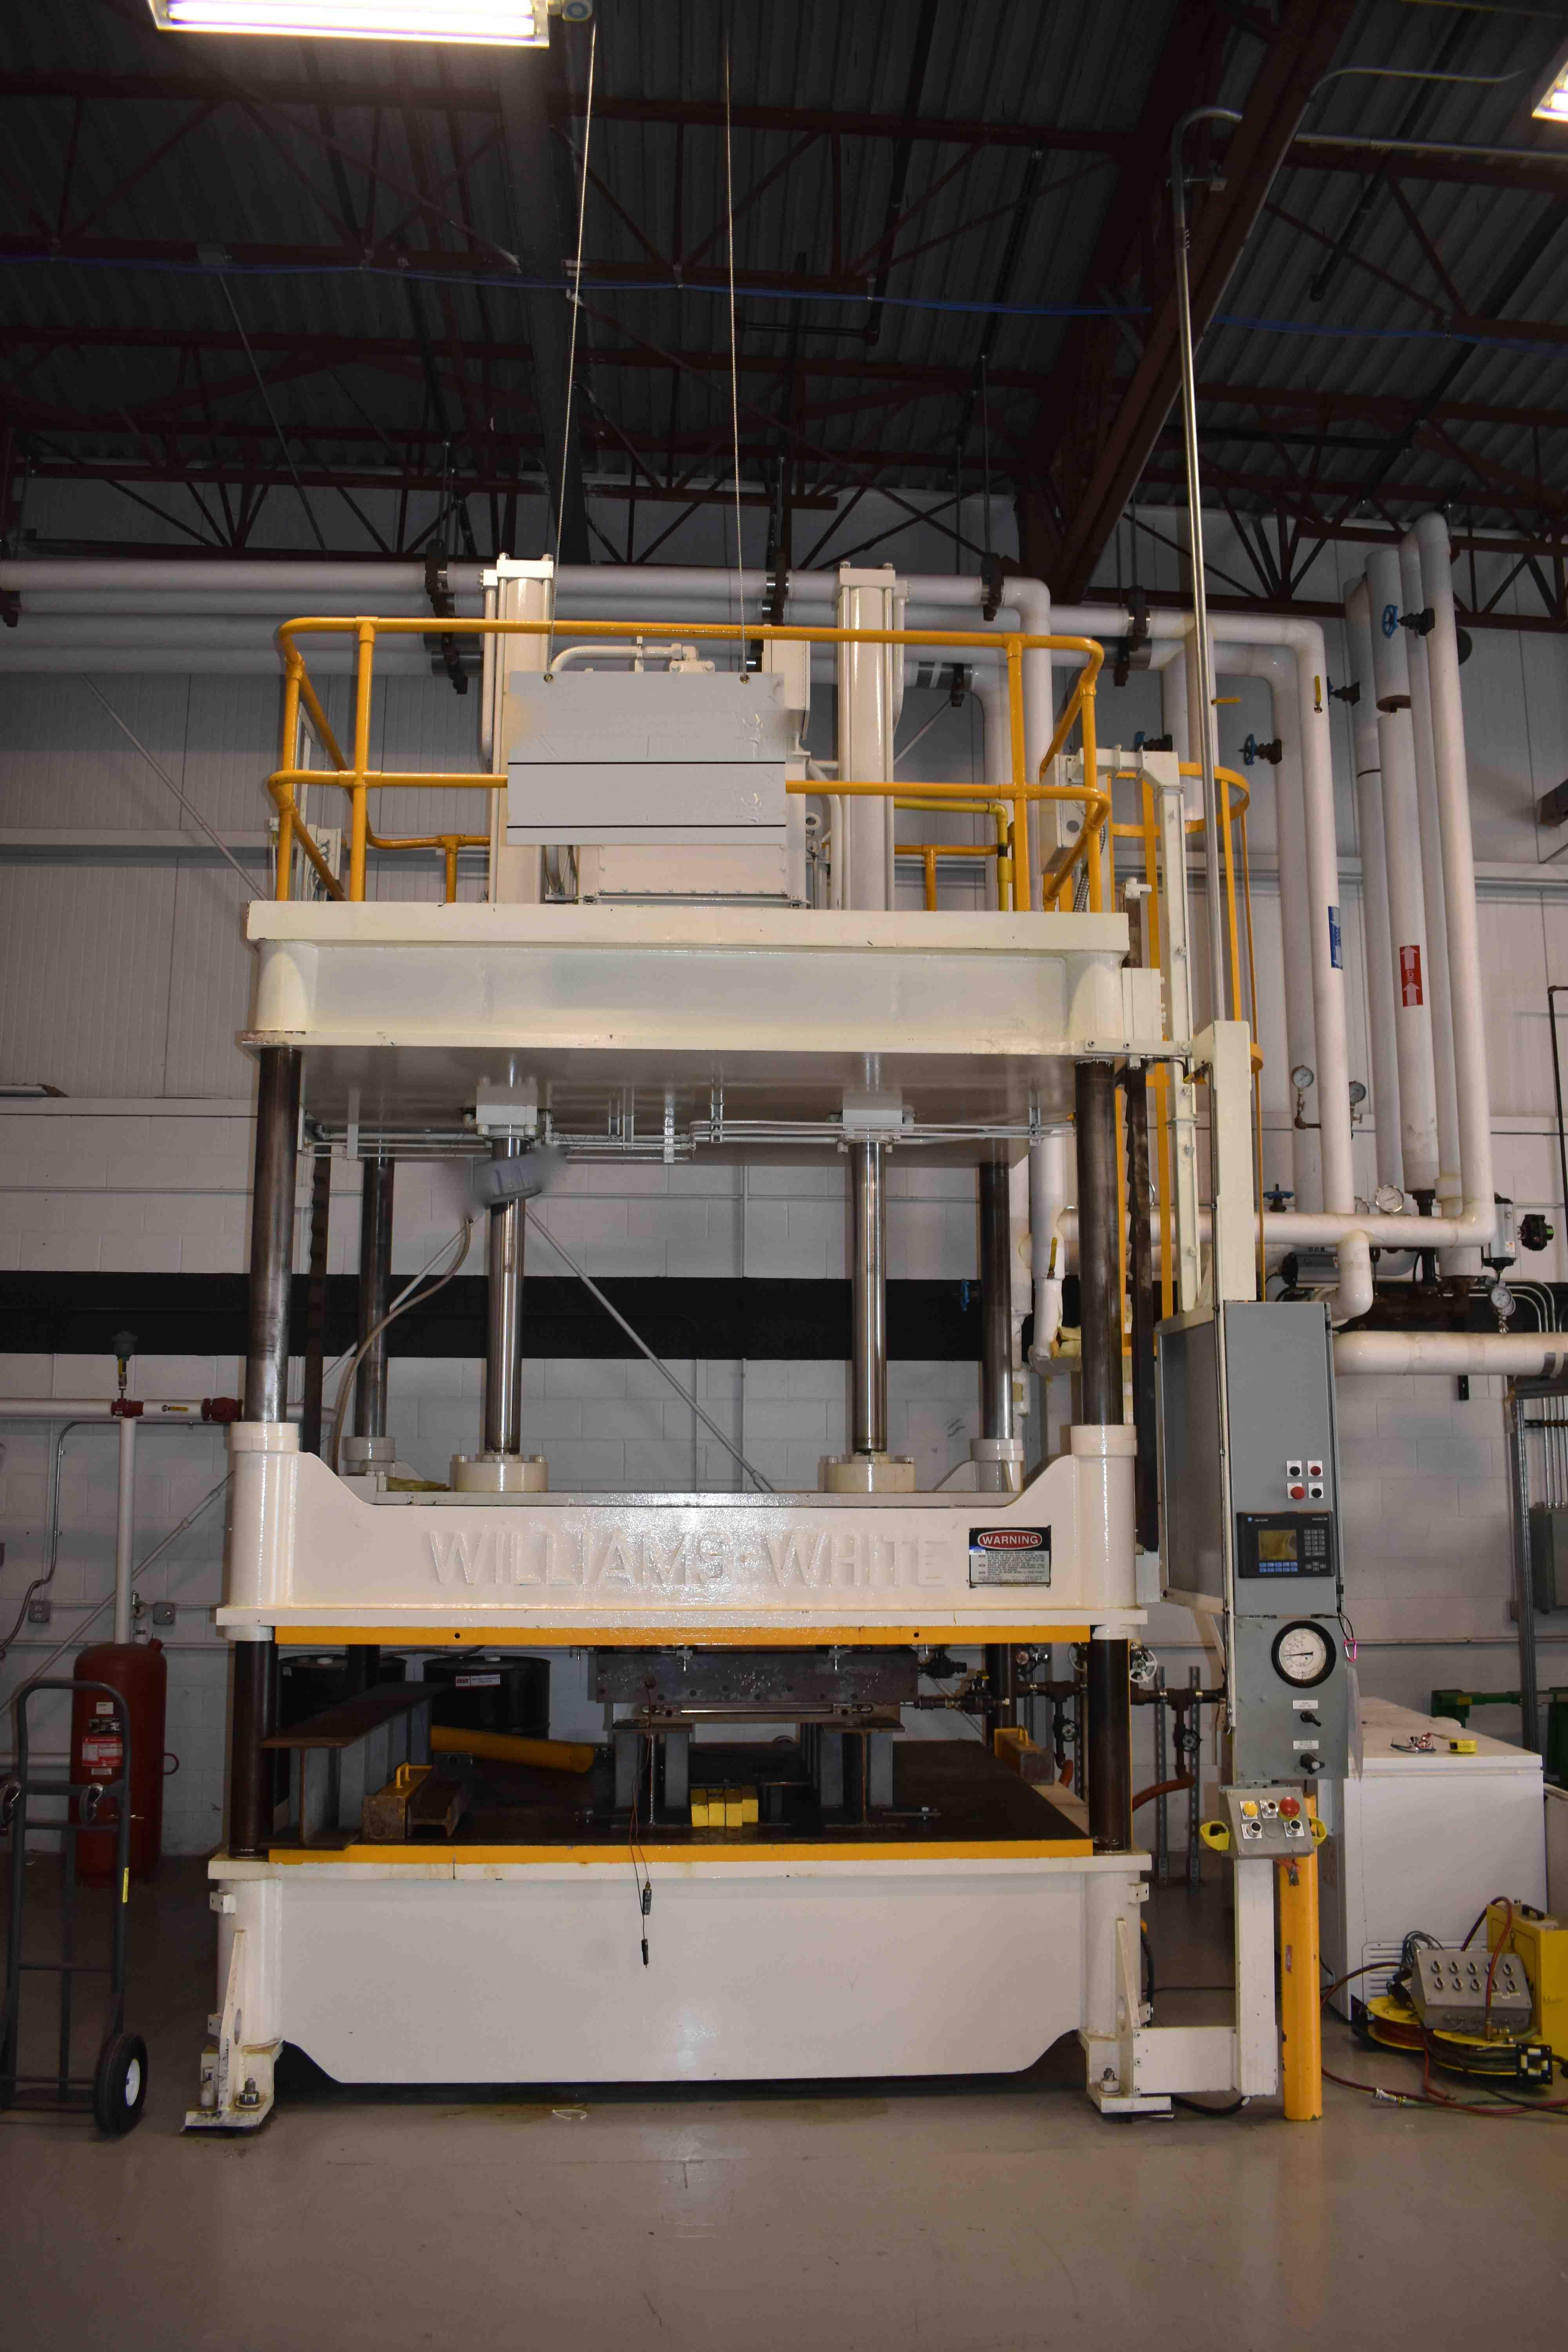 Williams & White 100 Ton 4 post Hydraulic Press With Updated Allen Bradley PLC